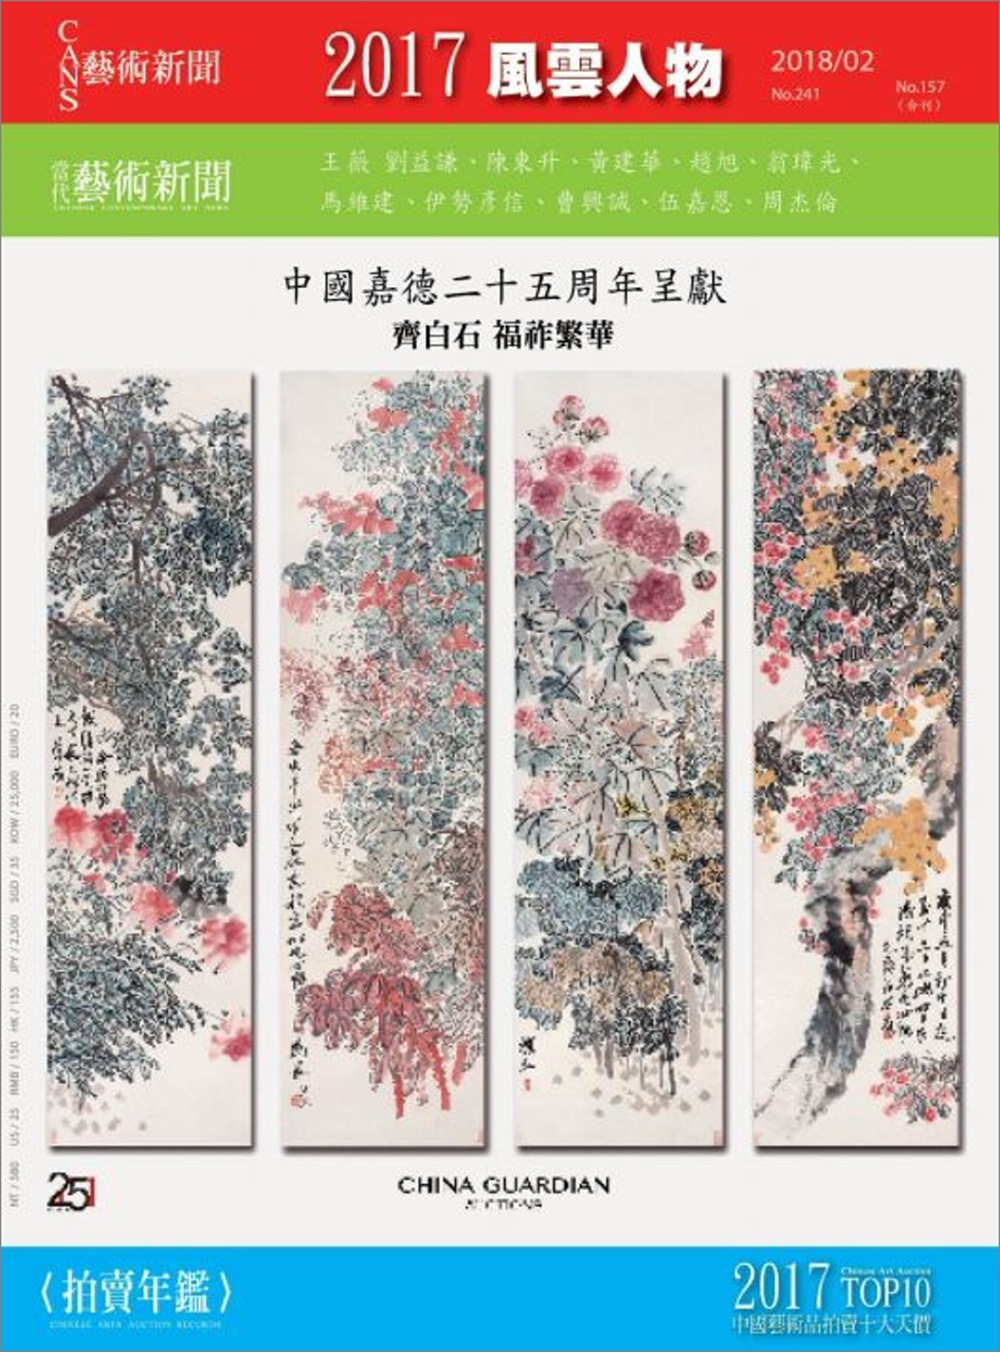 CANS藝術新聞 2月號/2018第241期+當代藝術新聞 2月號/2018 第157期(二冊合售)